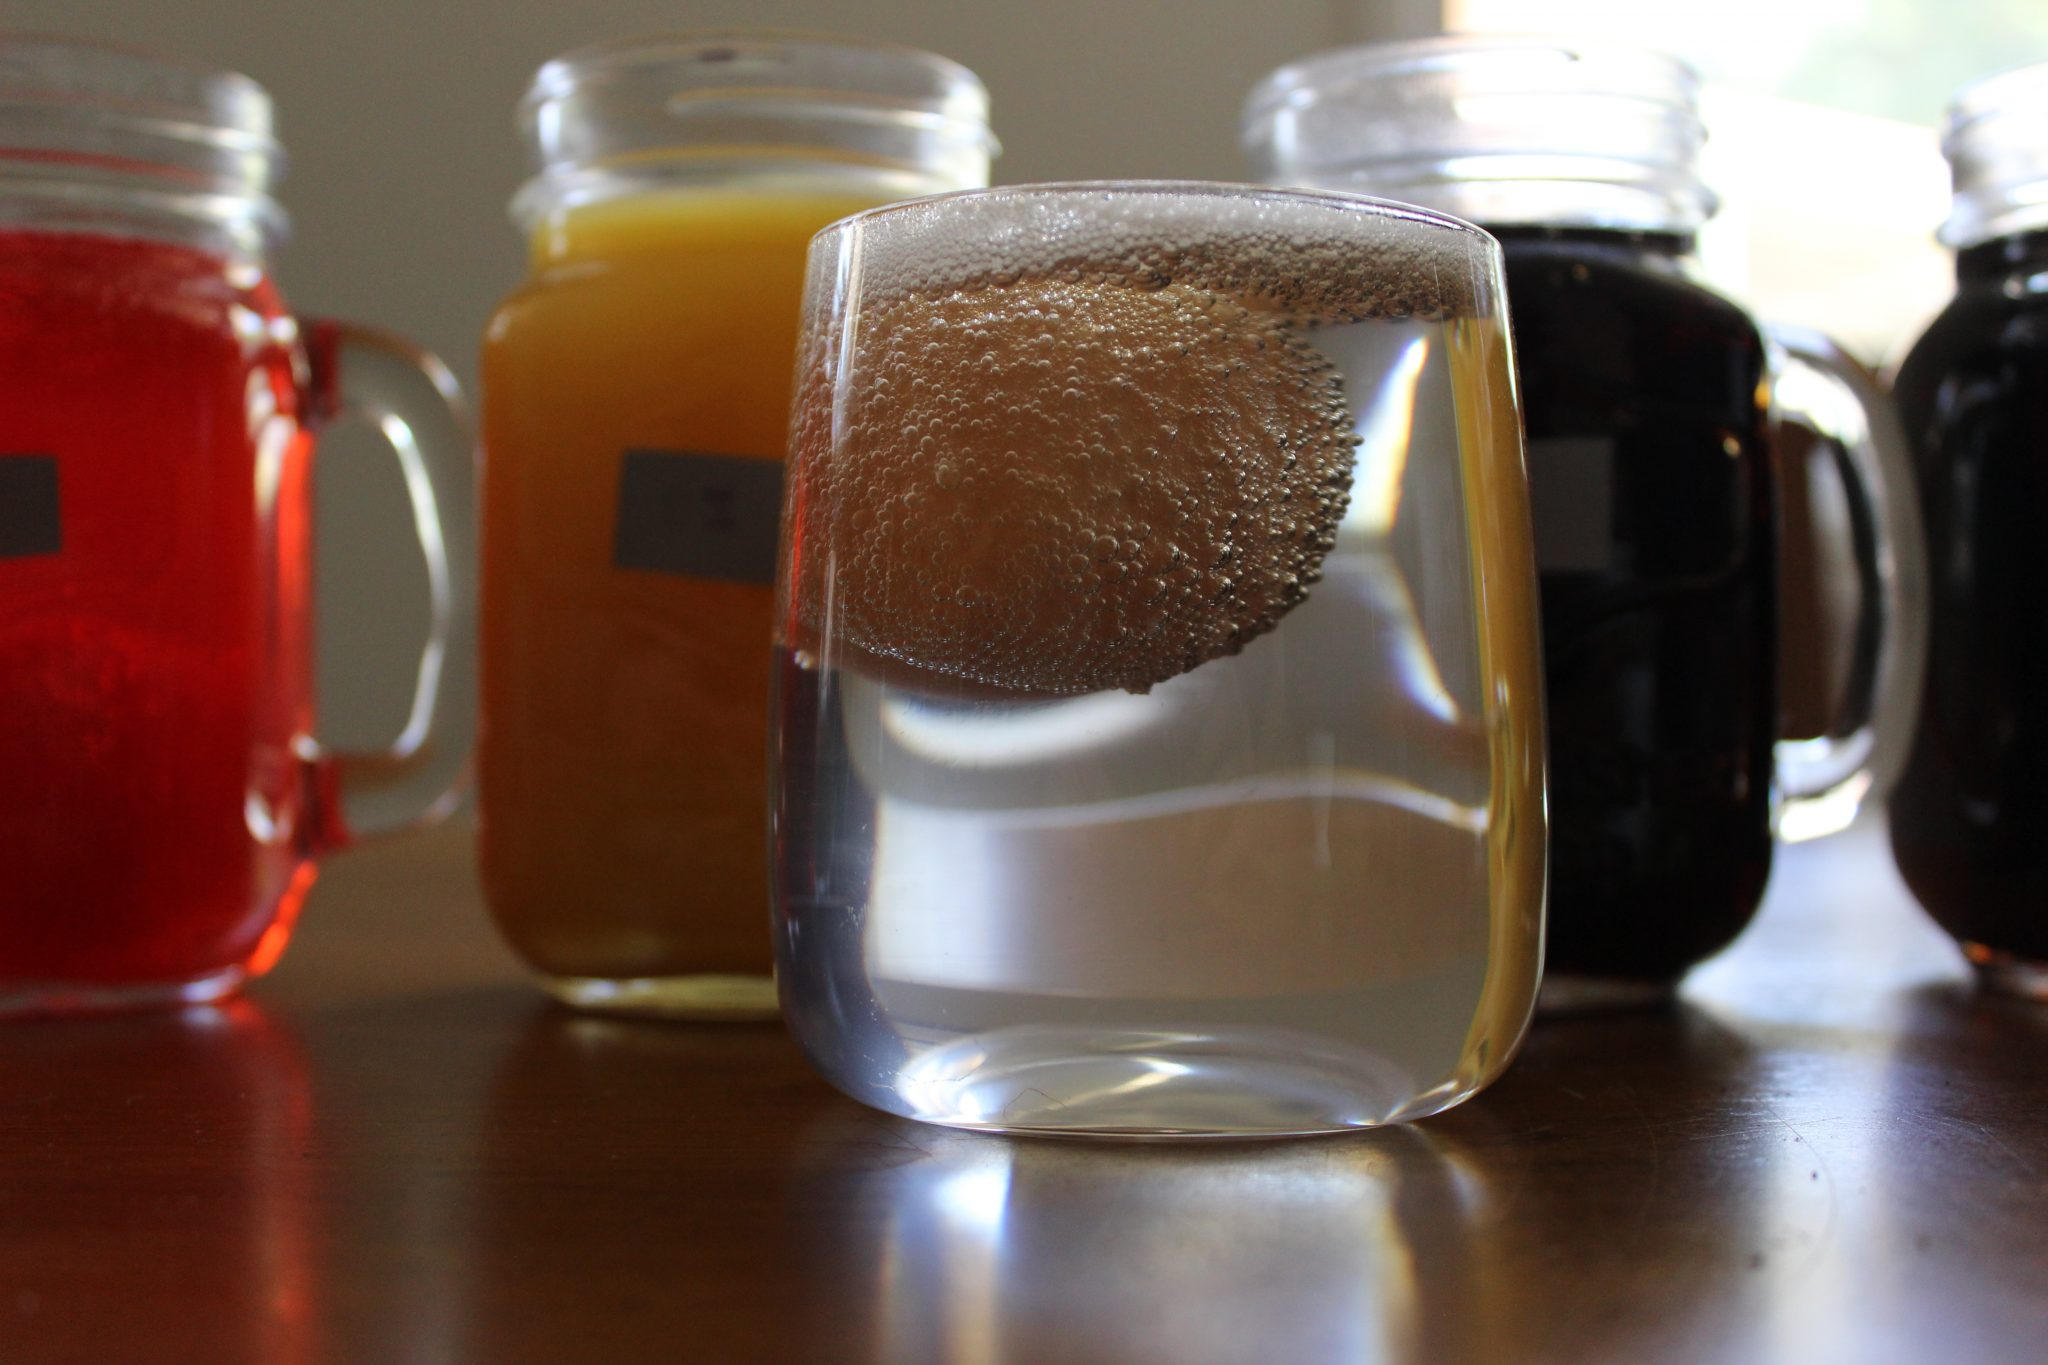 What Happens To Eggshells In Soft Drink